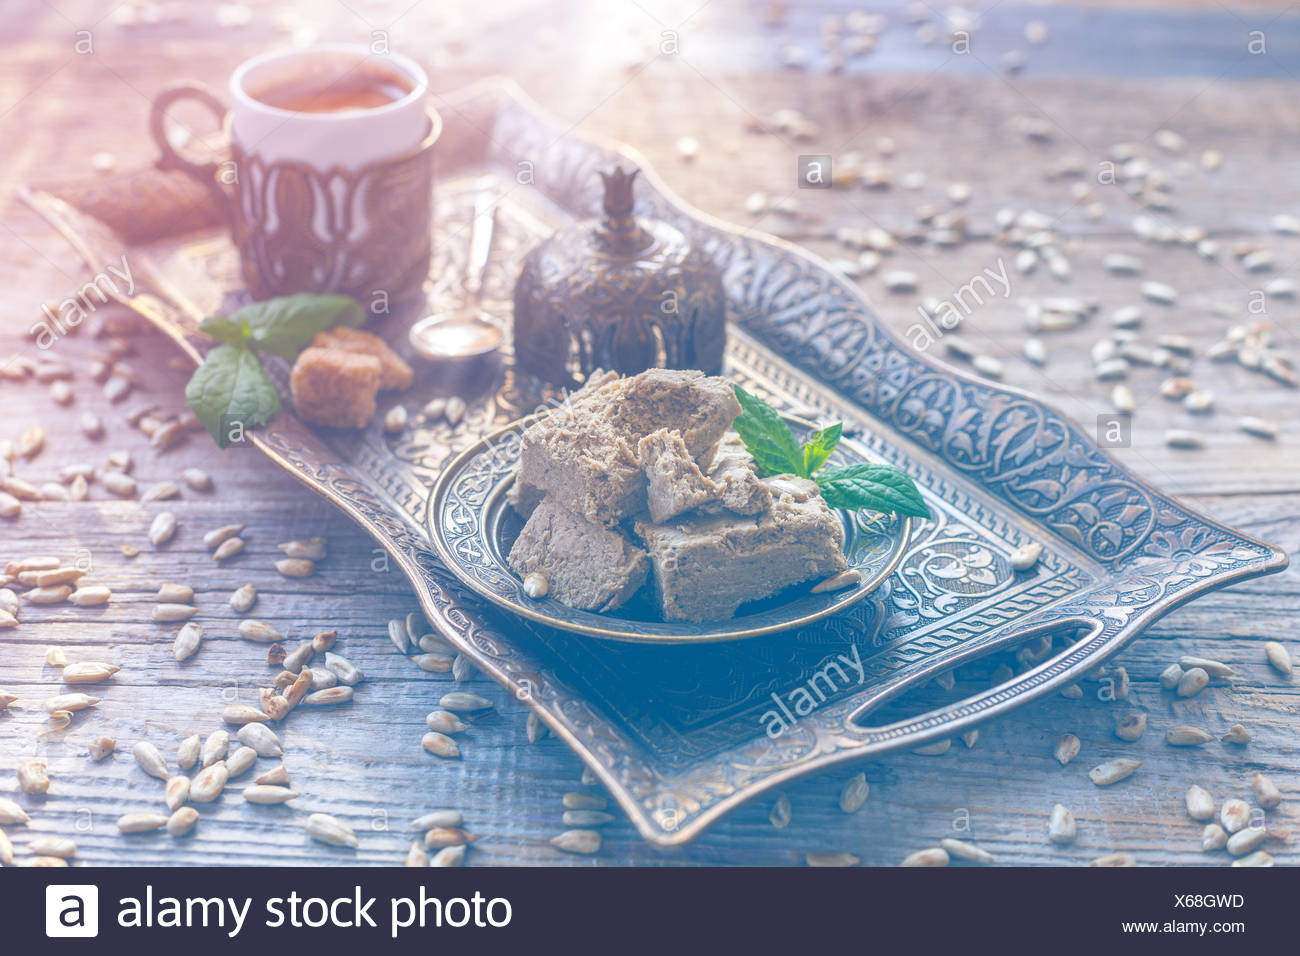 Halva and a cup of black coffee. - Stock Image